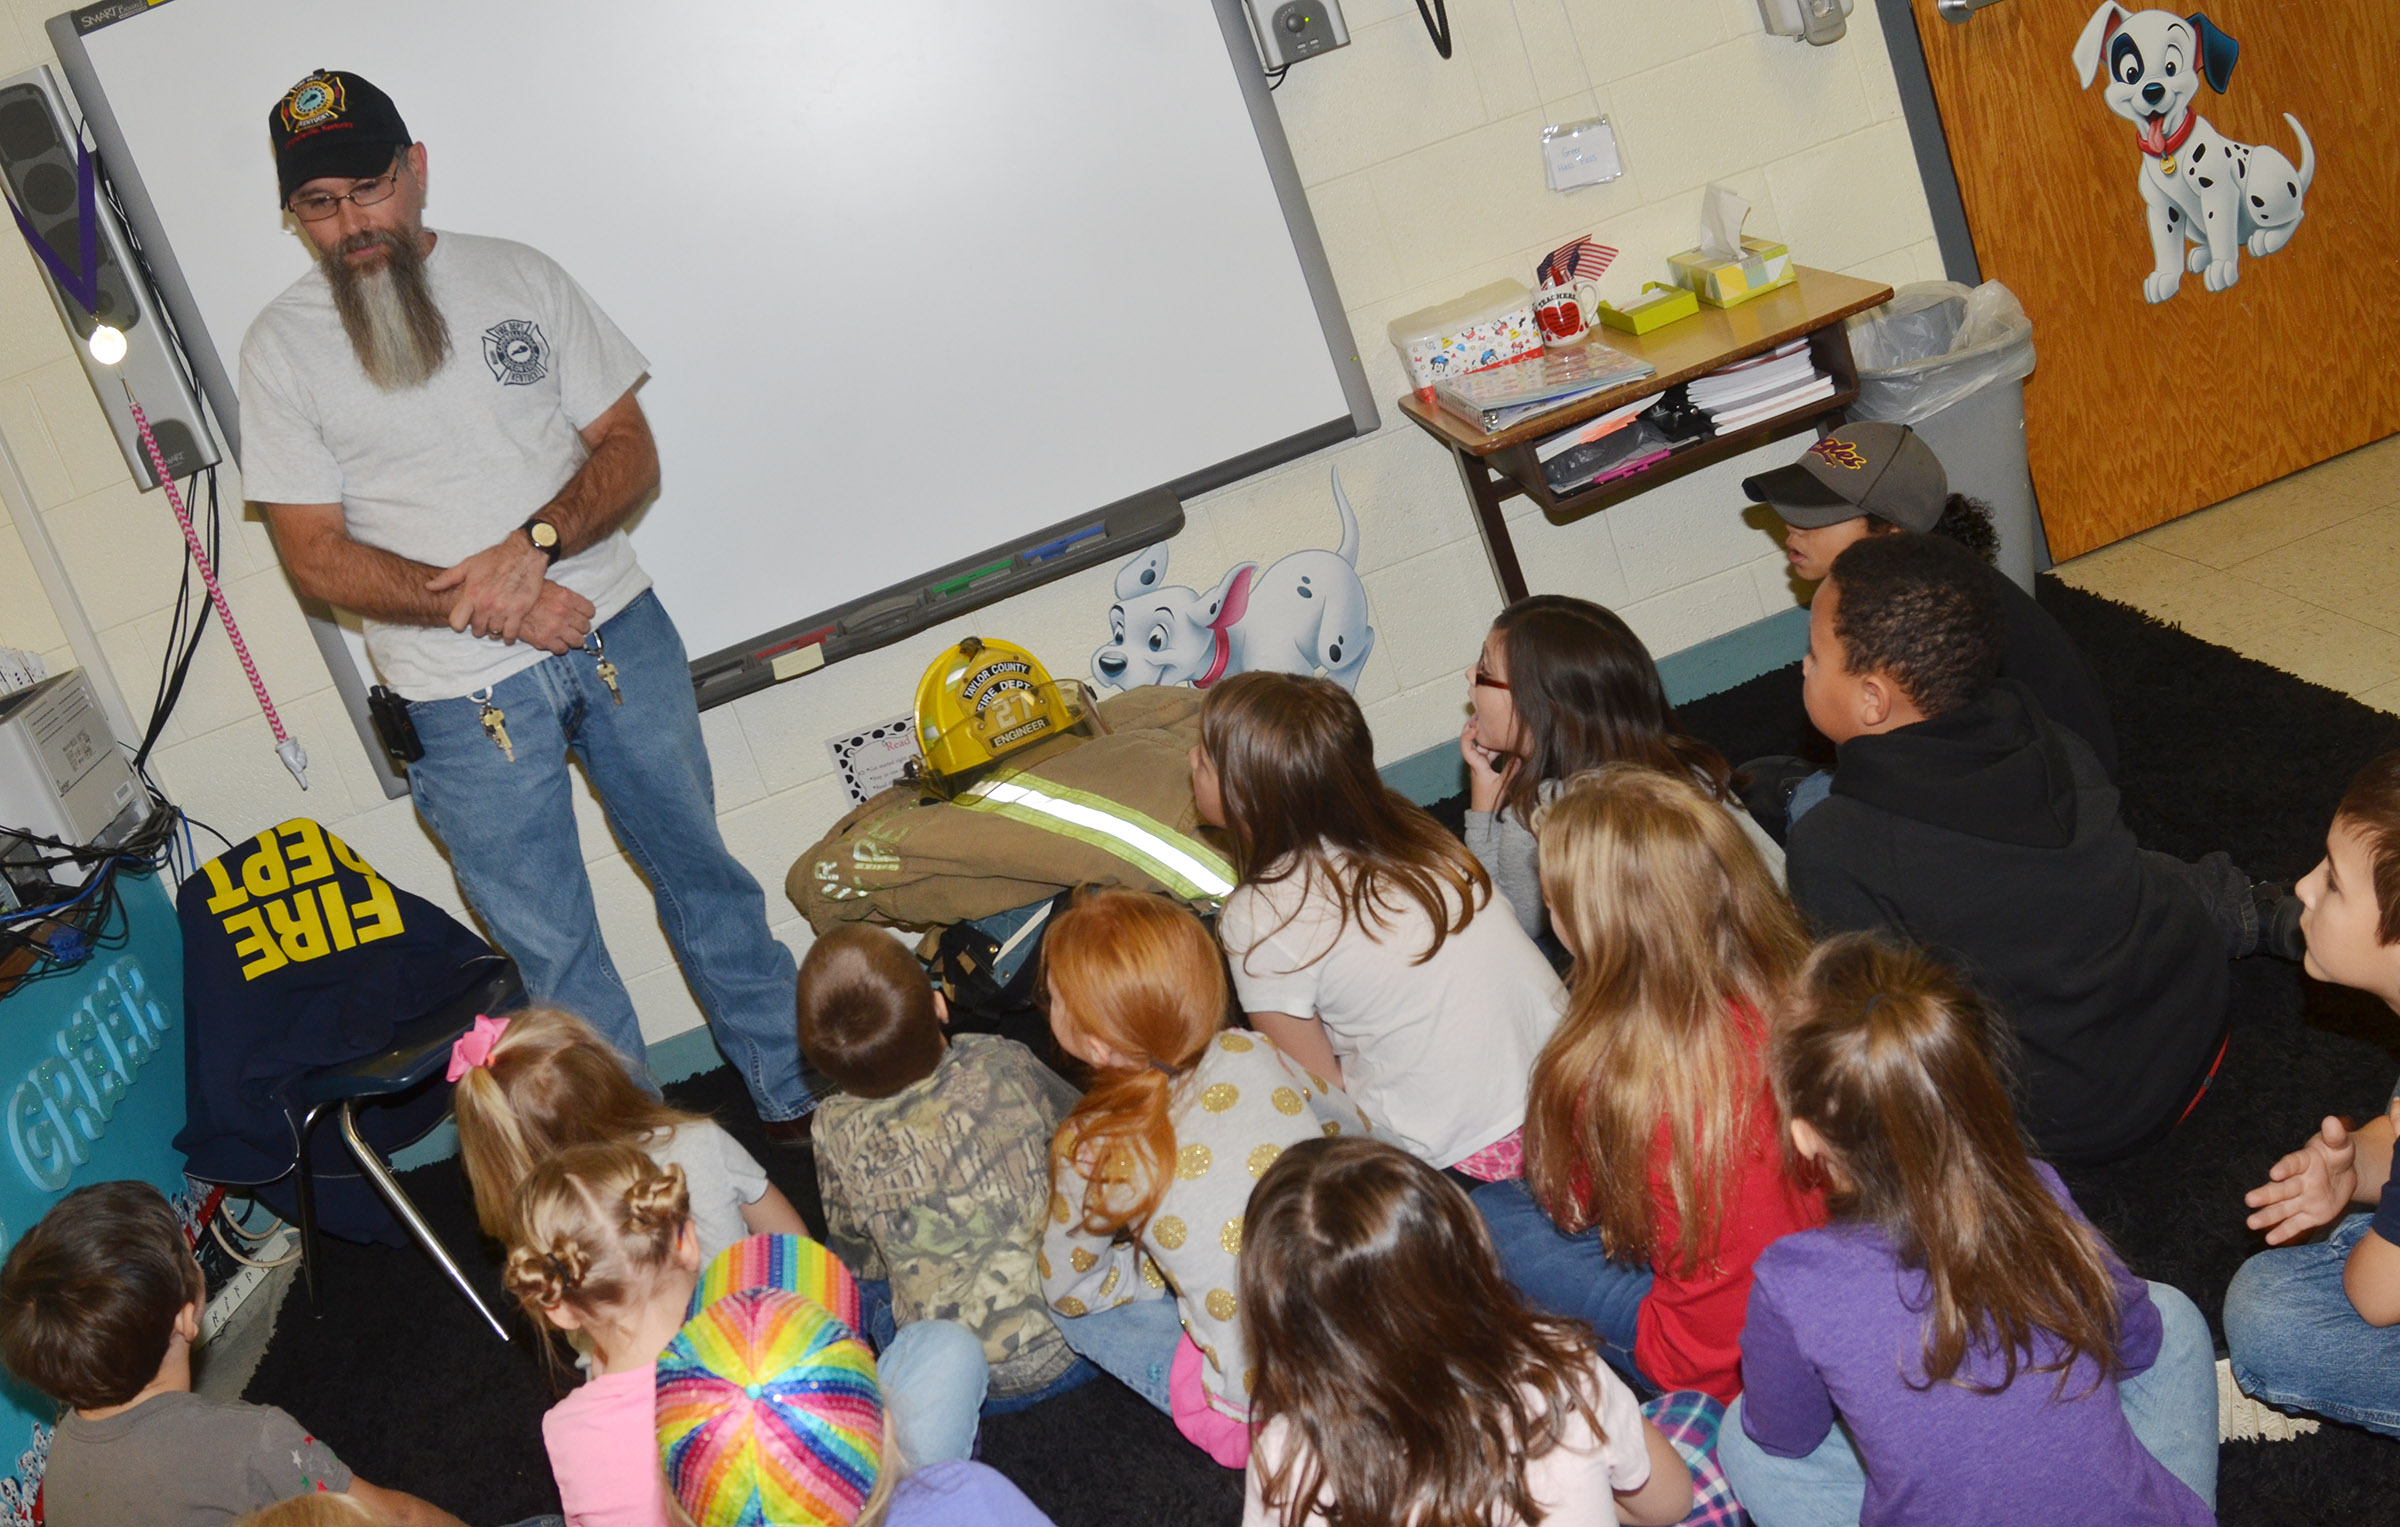 Randy Bricken, who is a volunteer firefighter at Taylor County Fire & Rescue and a custodial worker at Campbellsville elementary, middle and high schools, talks to CES first-graders about why it's important to help others.